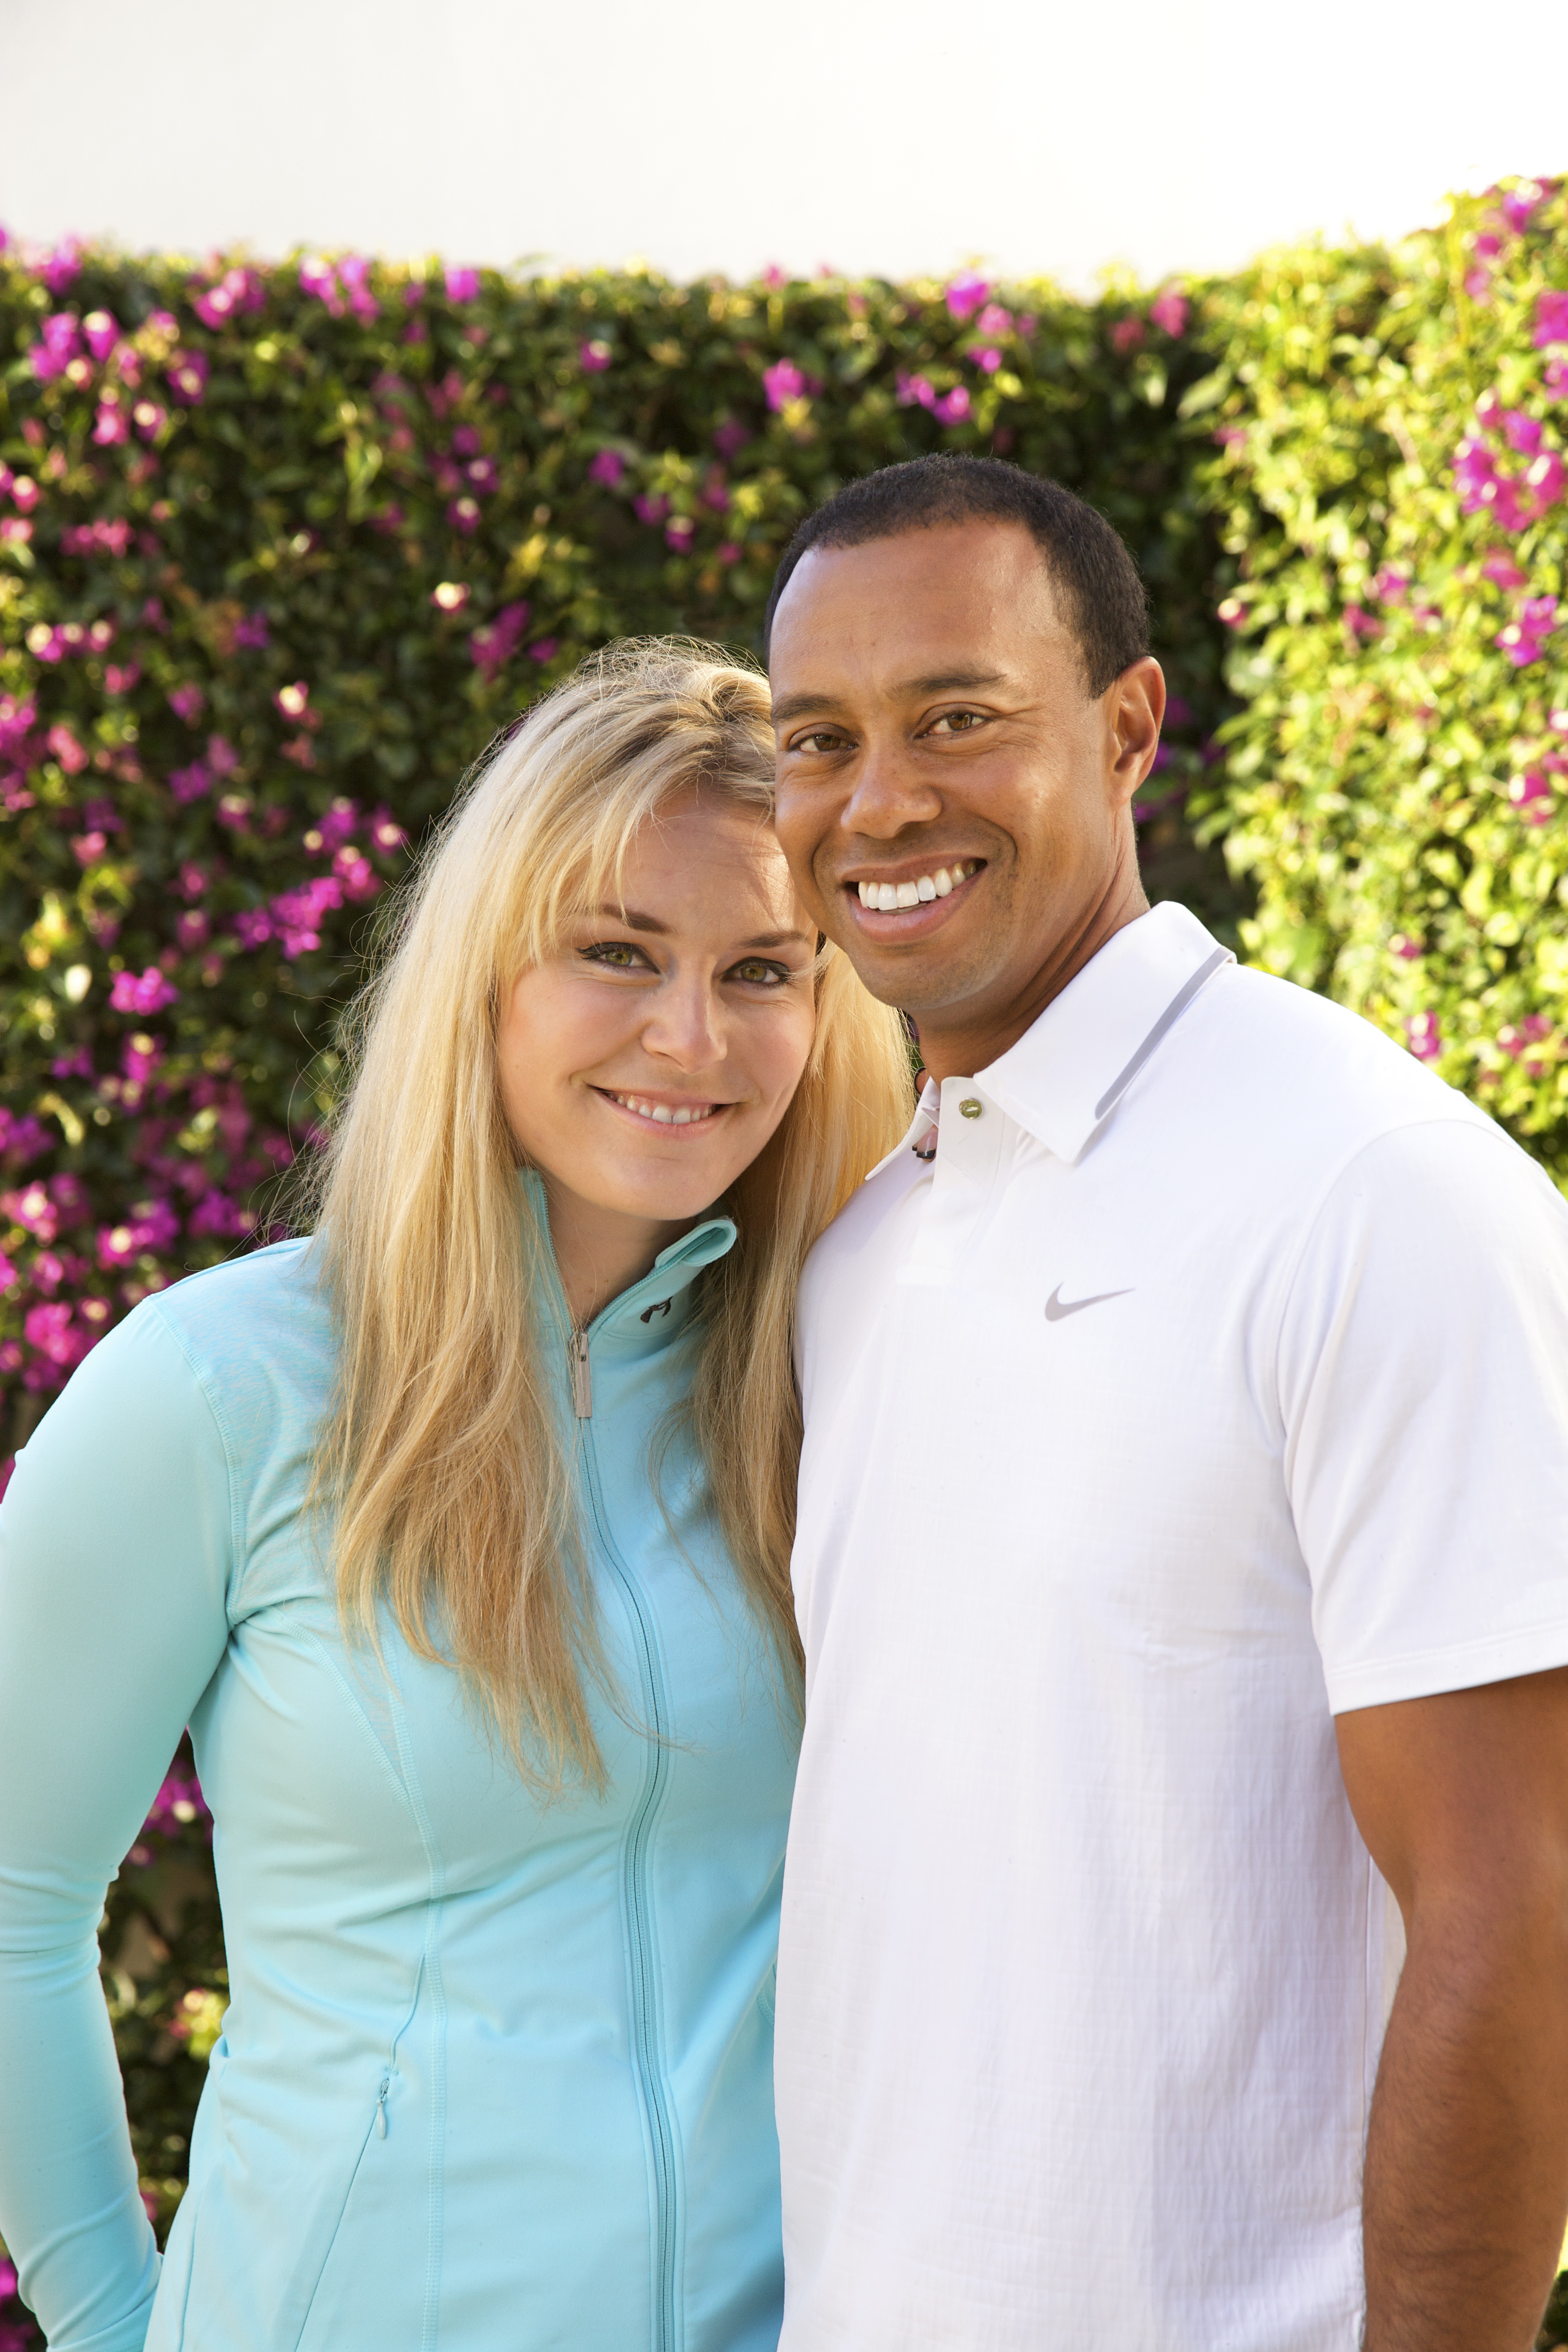 Tiger Woods  Lindsey Vonn dating  they confirm via Facebook     Tiger Woods  Lindsey Vonn dating  they confirm via Facebook   Washington Times